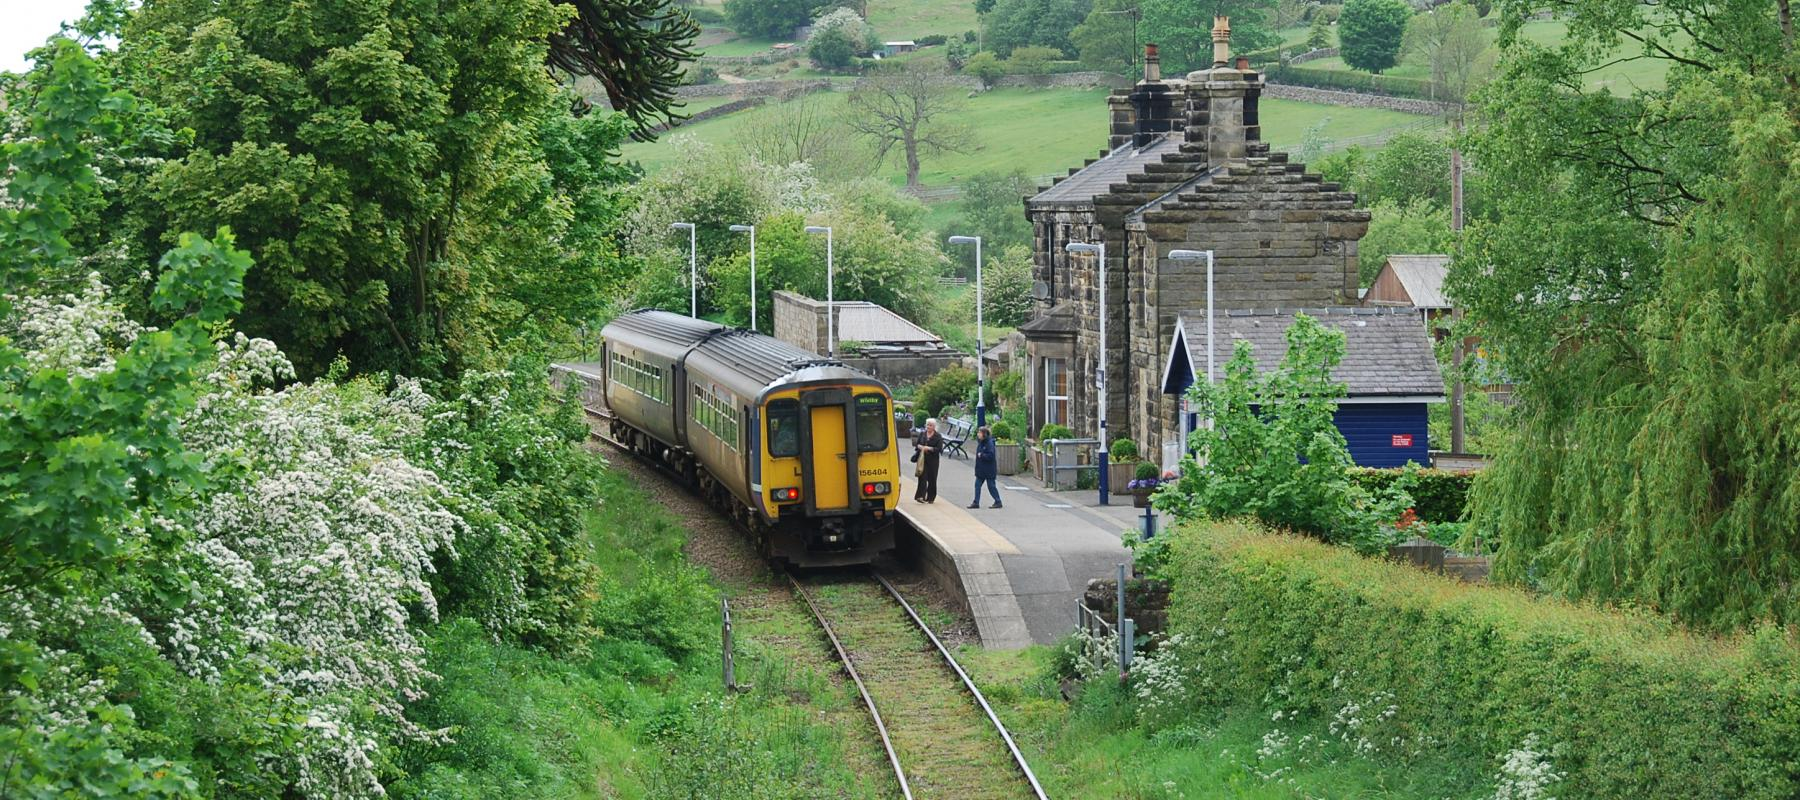 Train at Danby Station along the Esk Valley railway line. Yorkshire & North East UK